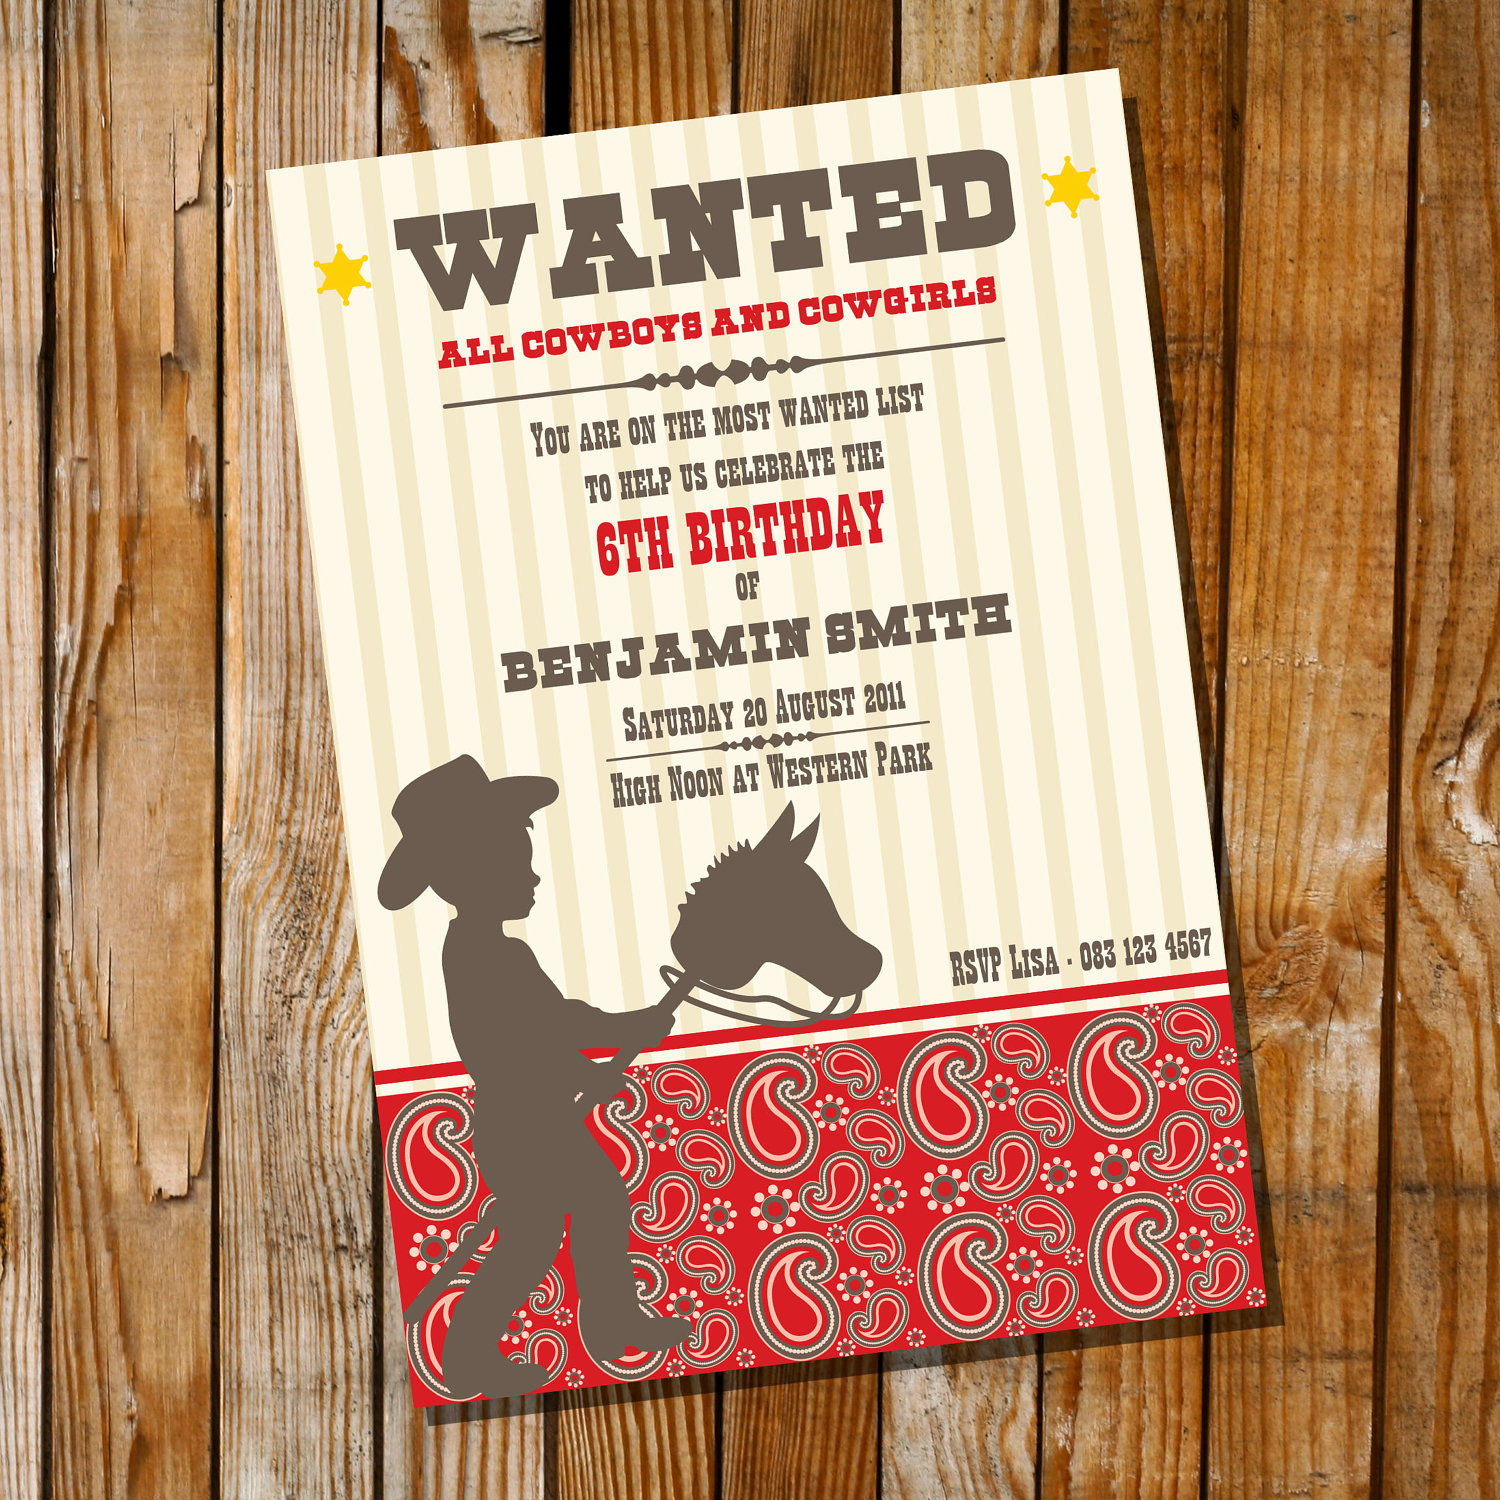 Western themed Invitation Wording Awesome Little Cowboy Birthday Party Invitation Ly Instantly